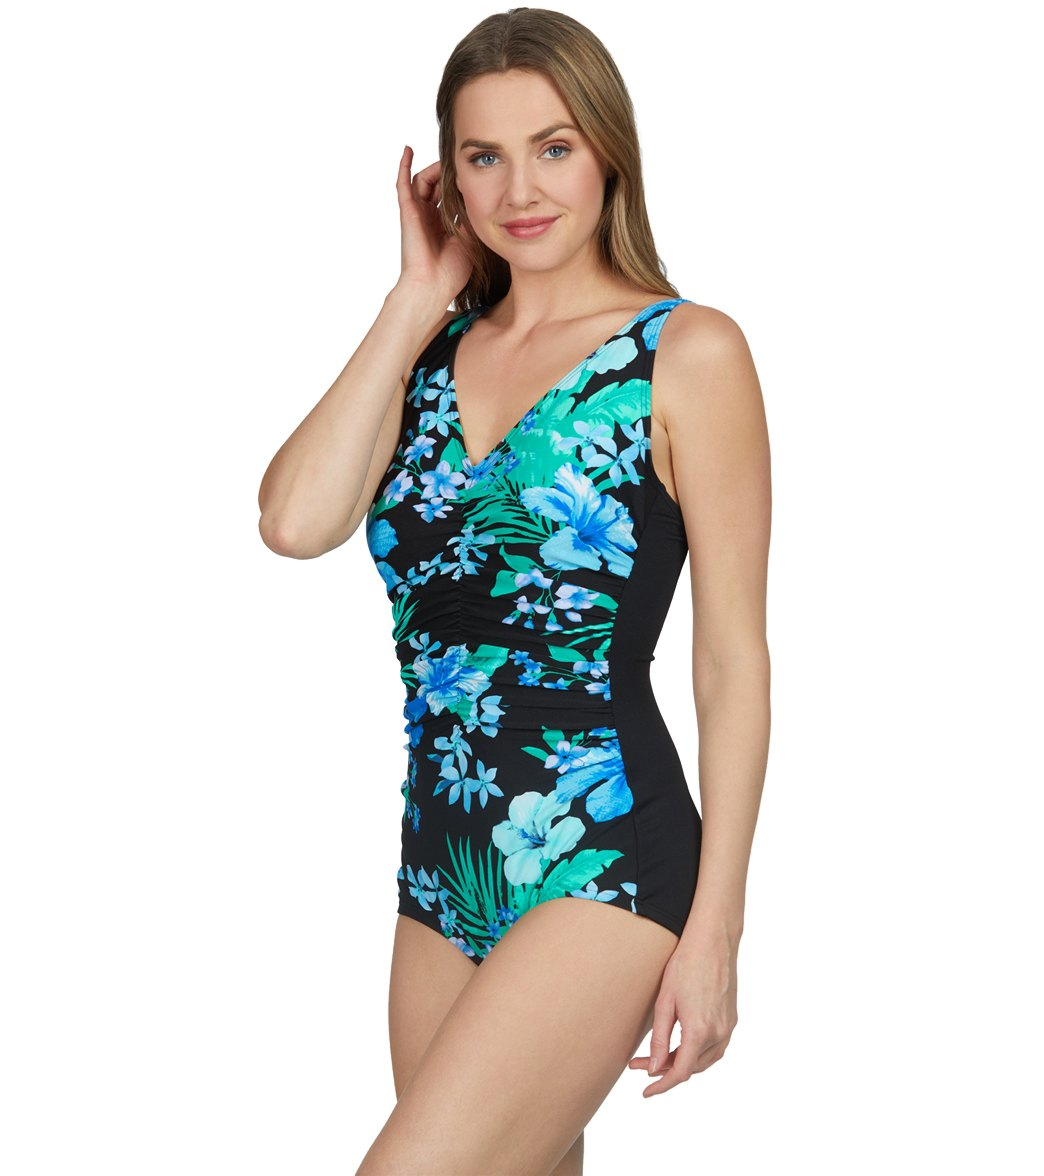 76df863250 Gabar Chlorine Resistant Native Floral V-Neck Girl Leg One Piece Swimsuit  at SwimOutlet.com - Free Shipping